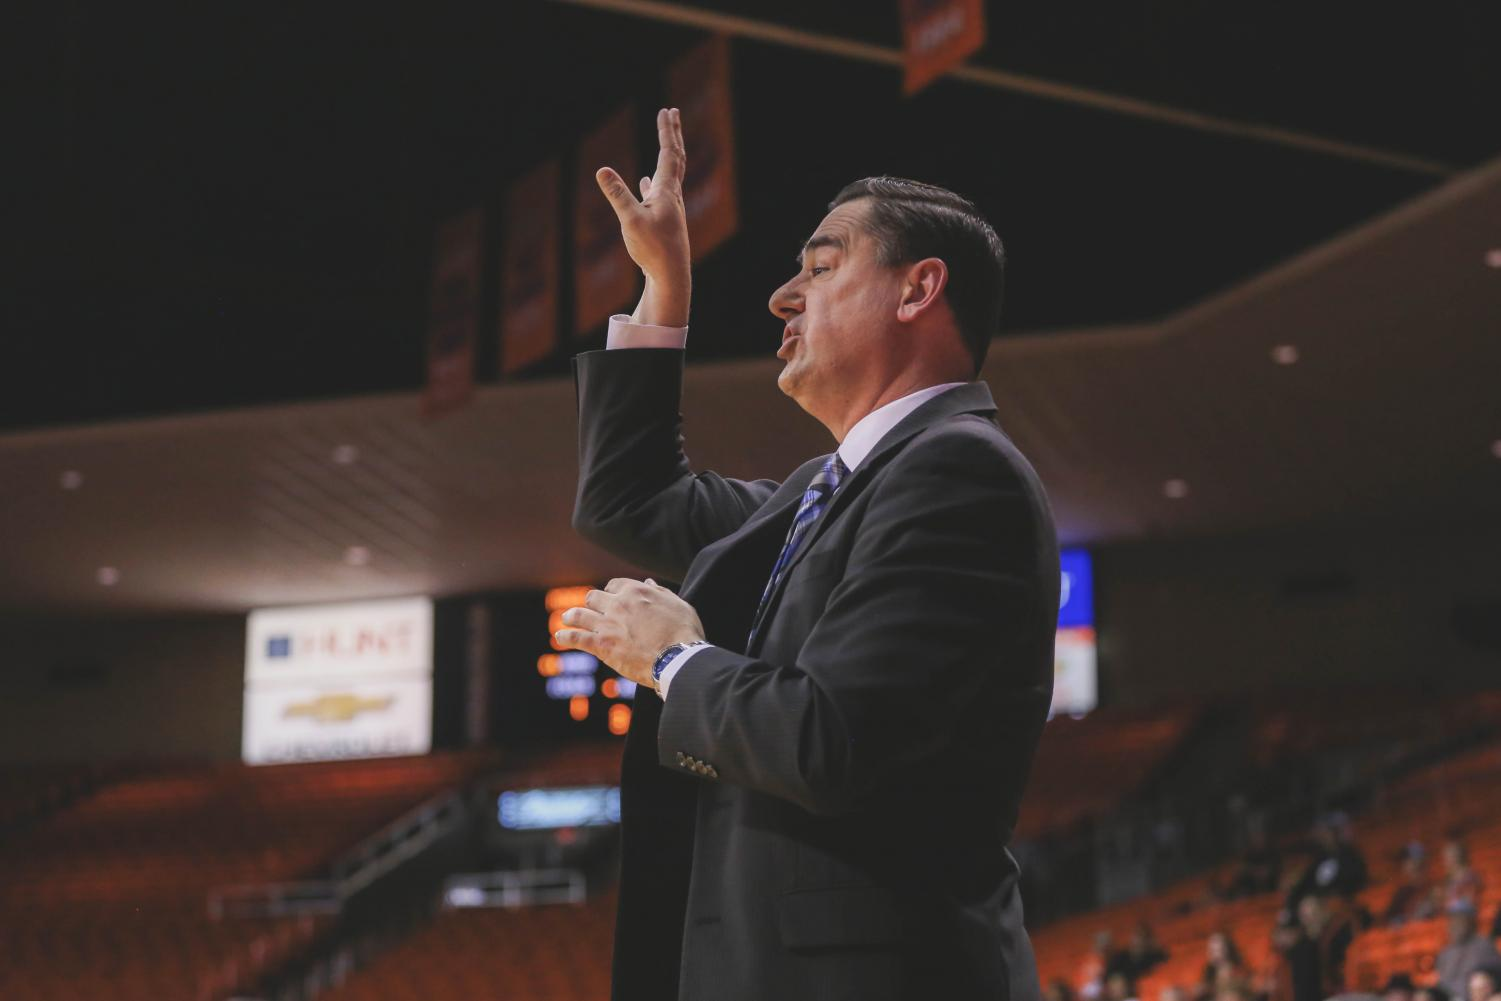 Head+Coach+Kevin+Baker+tells+his+team+to+shoot+during+the+free+throws+at+a+game+against+the+NMSU+Aggies+on+Saturday%2C+Nov.+17.+